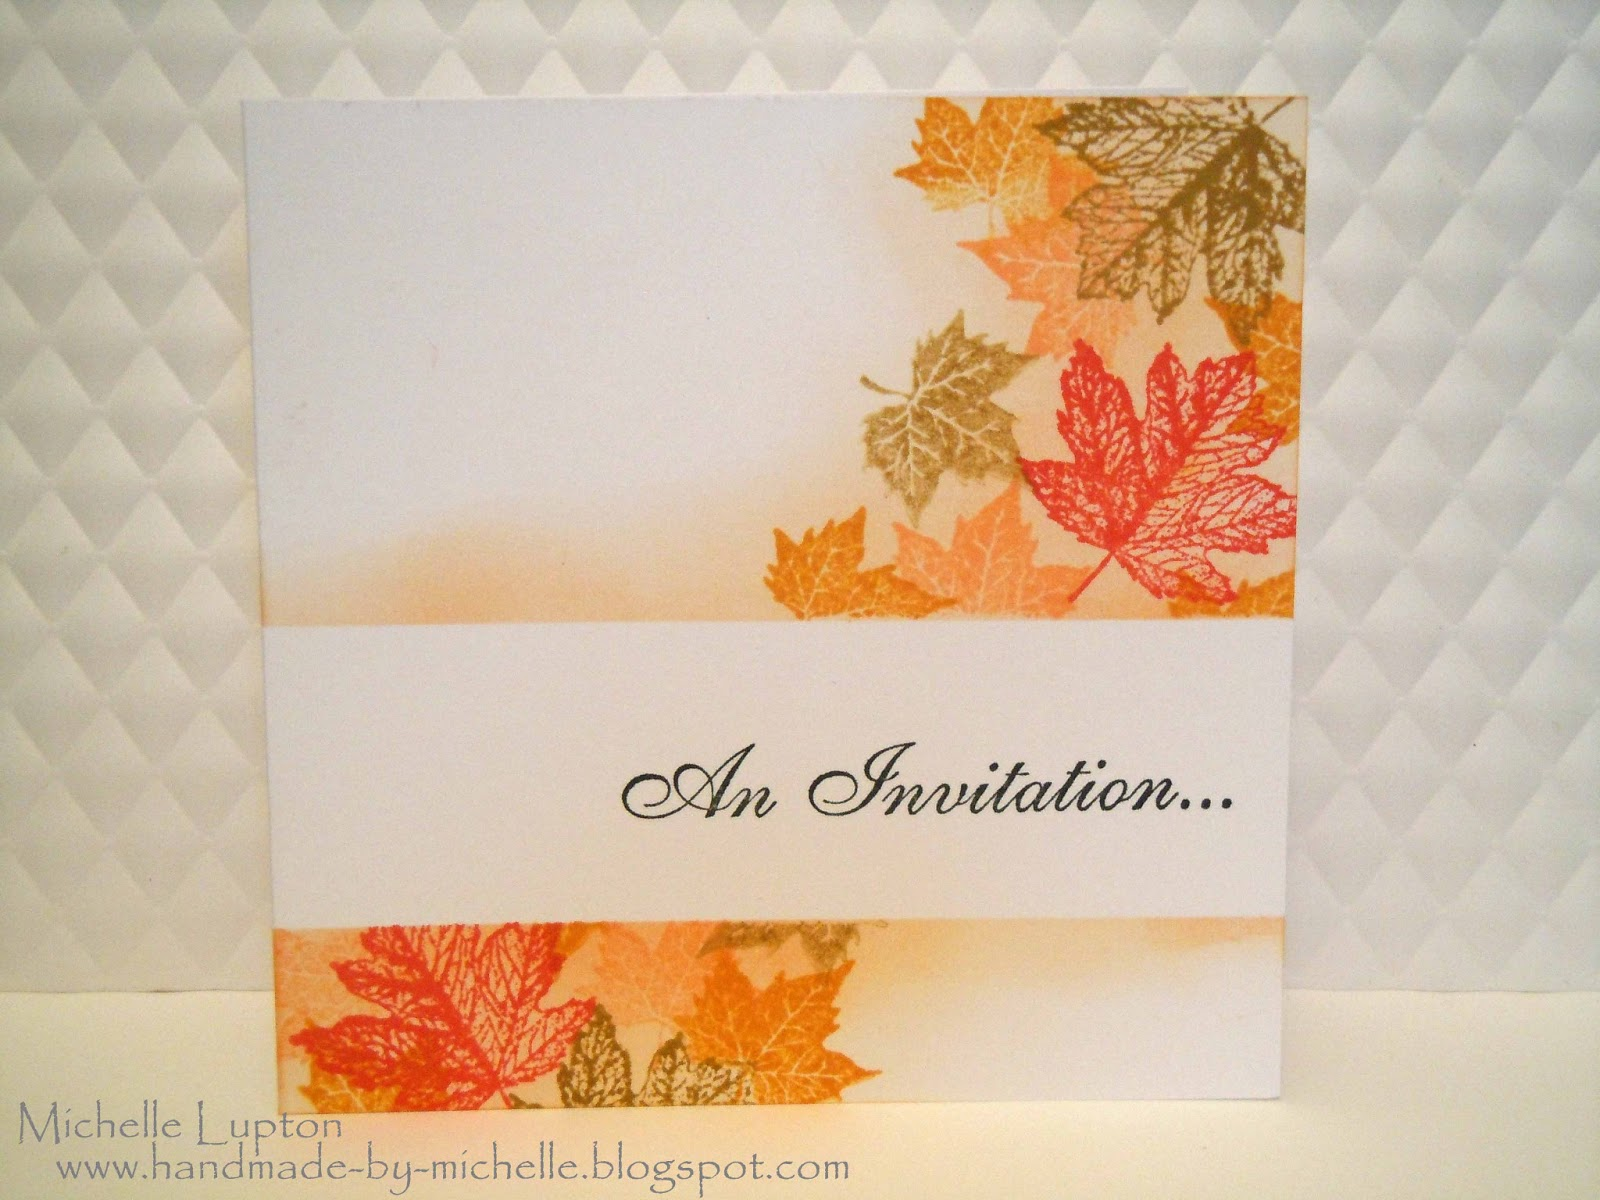 Handmade by michelle wedding invitations she wanted an autumn themed invitation so i made these samples for her she decided not to go with these ideas so i thought id share them here stopboris Images